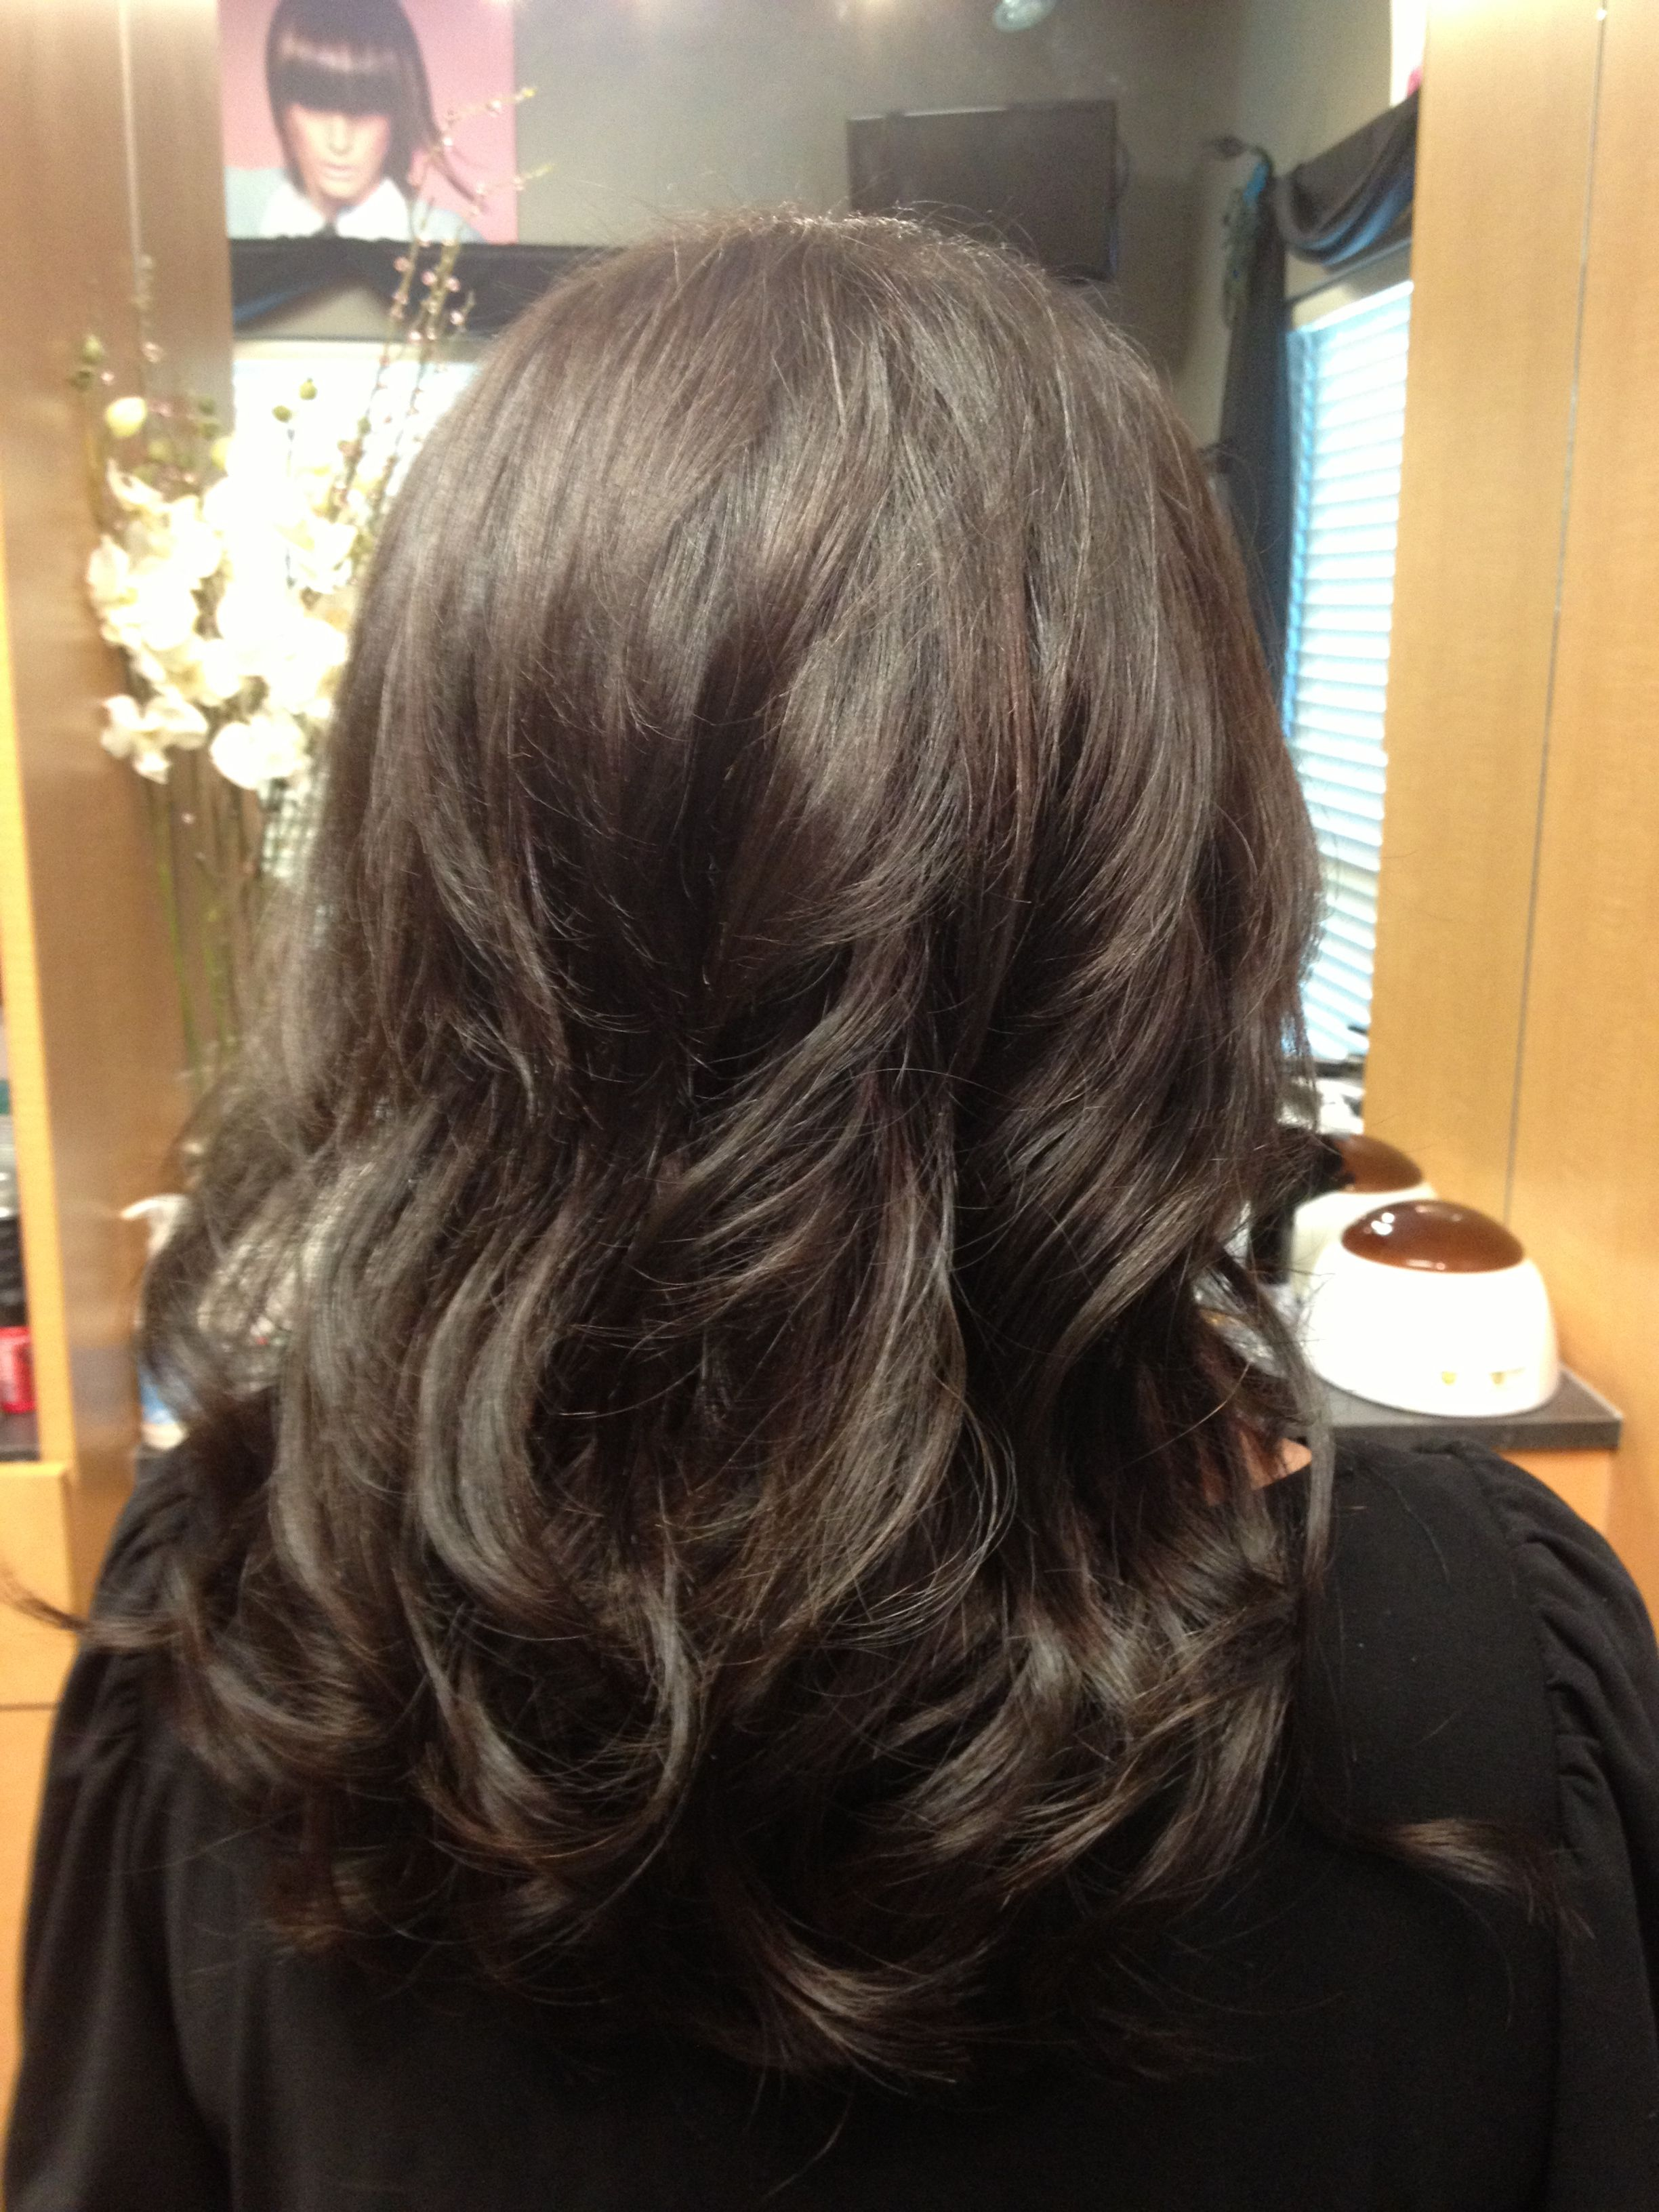 Dark Hair With Klix Hair Extensions For Volume And Some Length